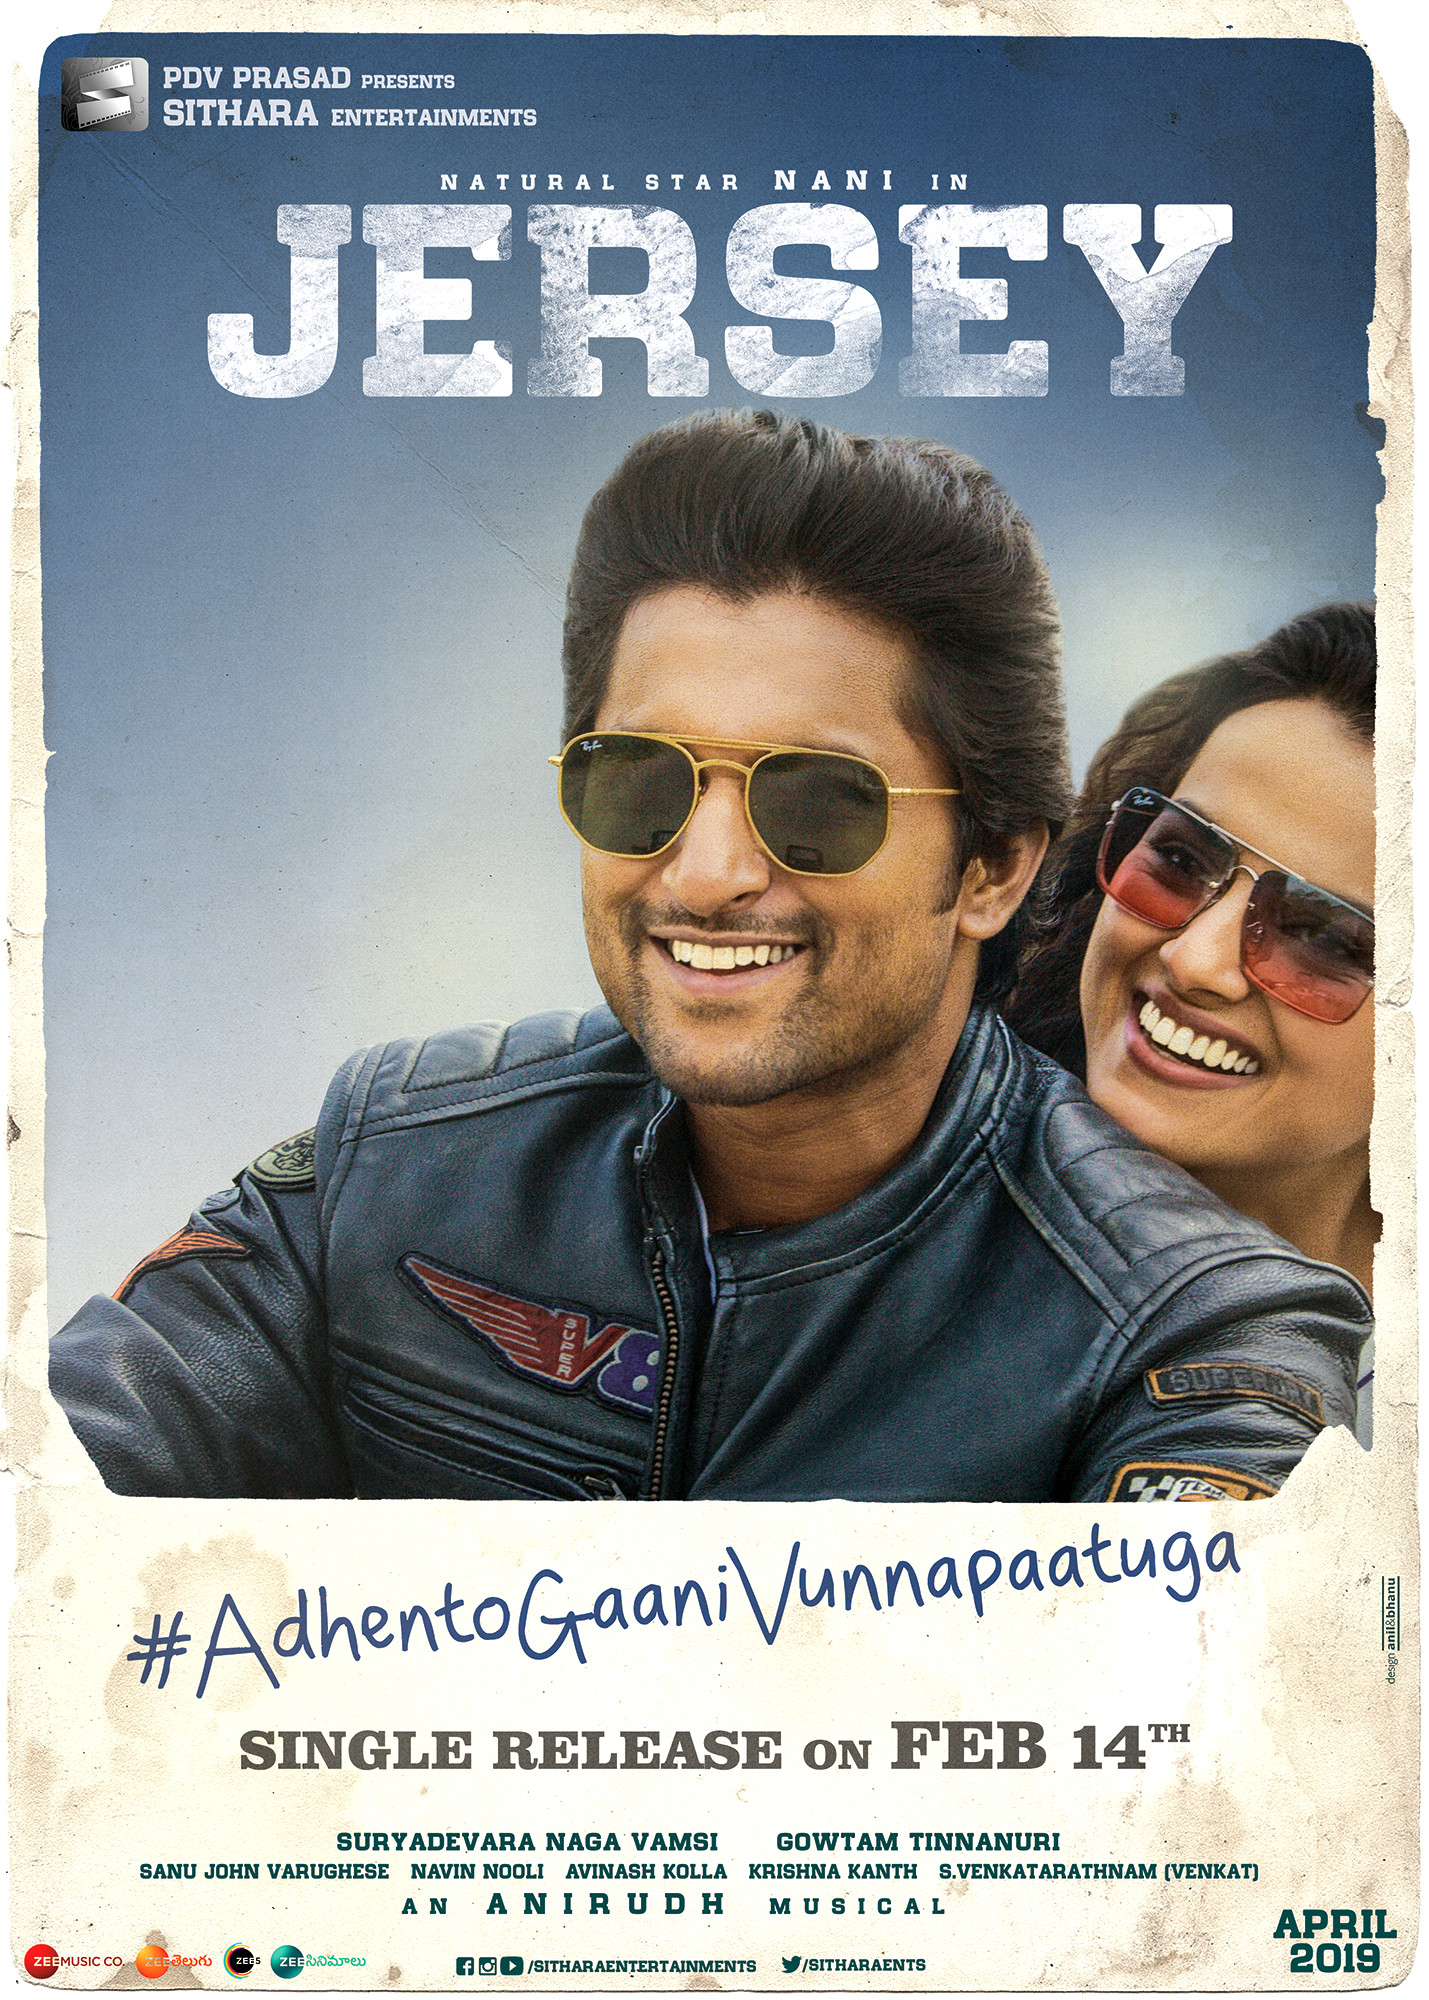 Nani, Shraddha Srinath @ JERSEY First Single Adhentogaani Vunnapaatuga Release on 14th February Poster HD